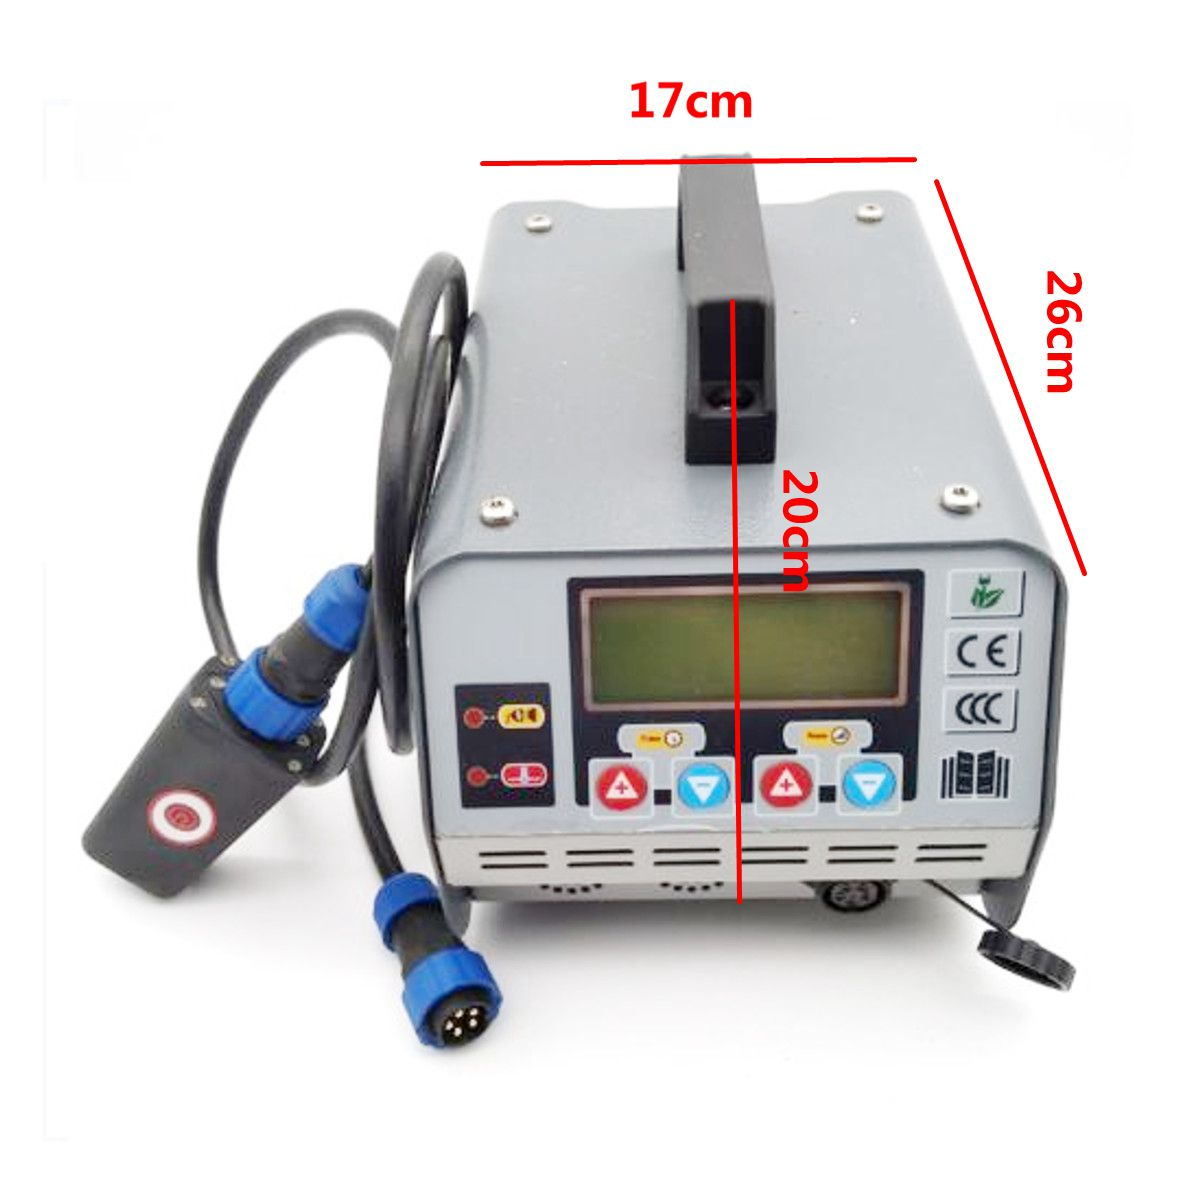 220V 1100W Paintless Dent Repair Remover PDR Induction Heater Hot Box